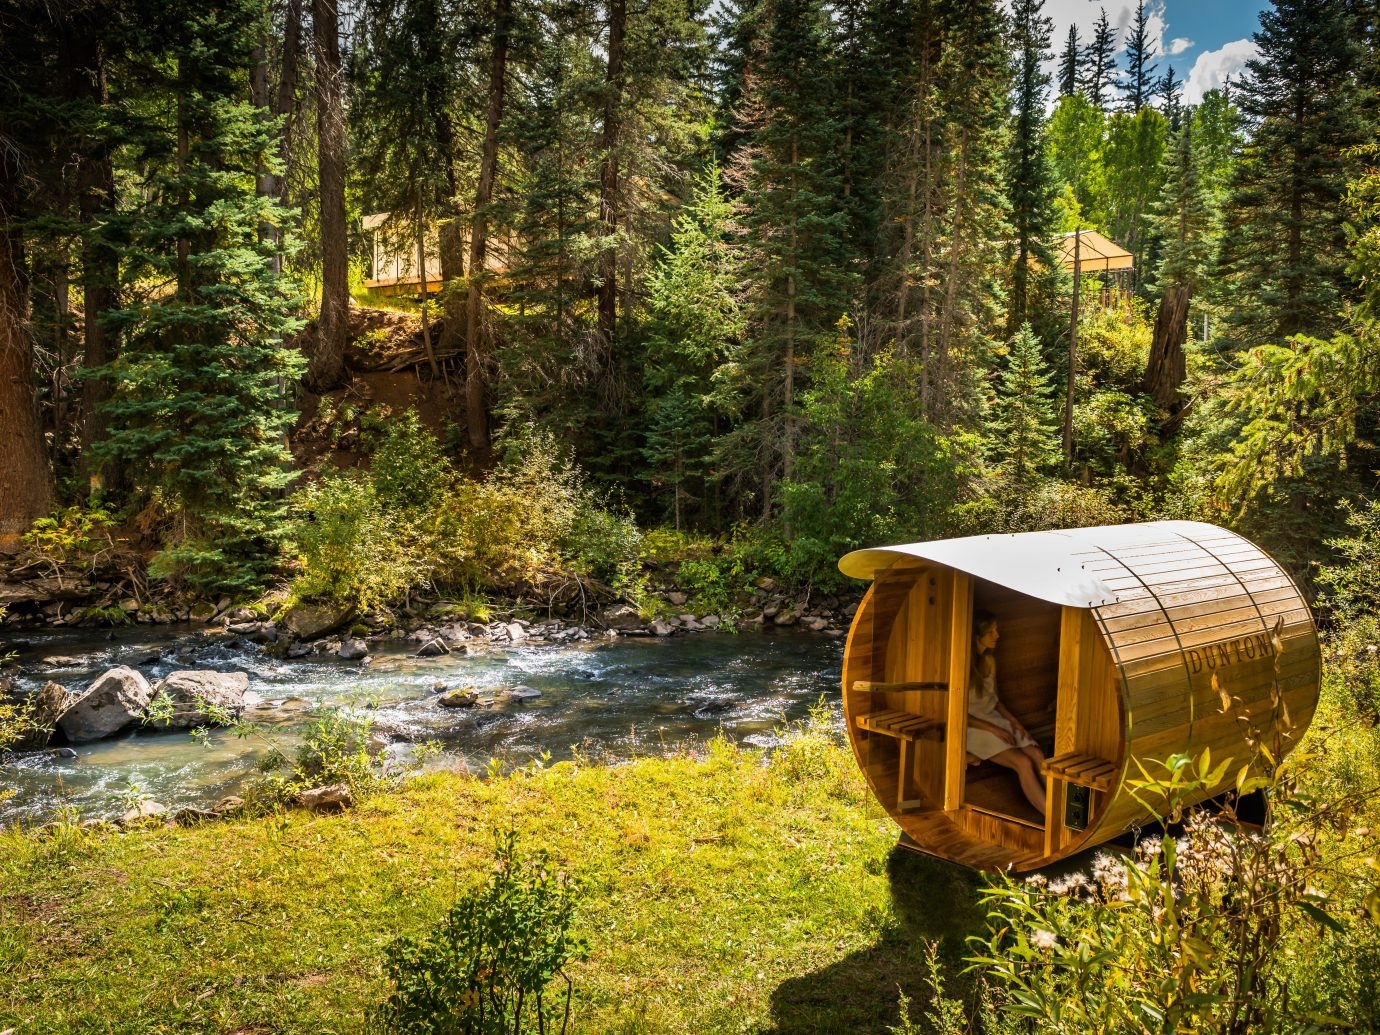 Adventure Country Forest Glamping Grounds Luxury Travel Mountains Rustic Scenic views Trip Ideas Wellness tree outdoor grass habitat Nature wilderness natural environment ecosystem woodland season wooded autumn Jungle wood stream trail rainforest surrounded lush